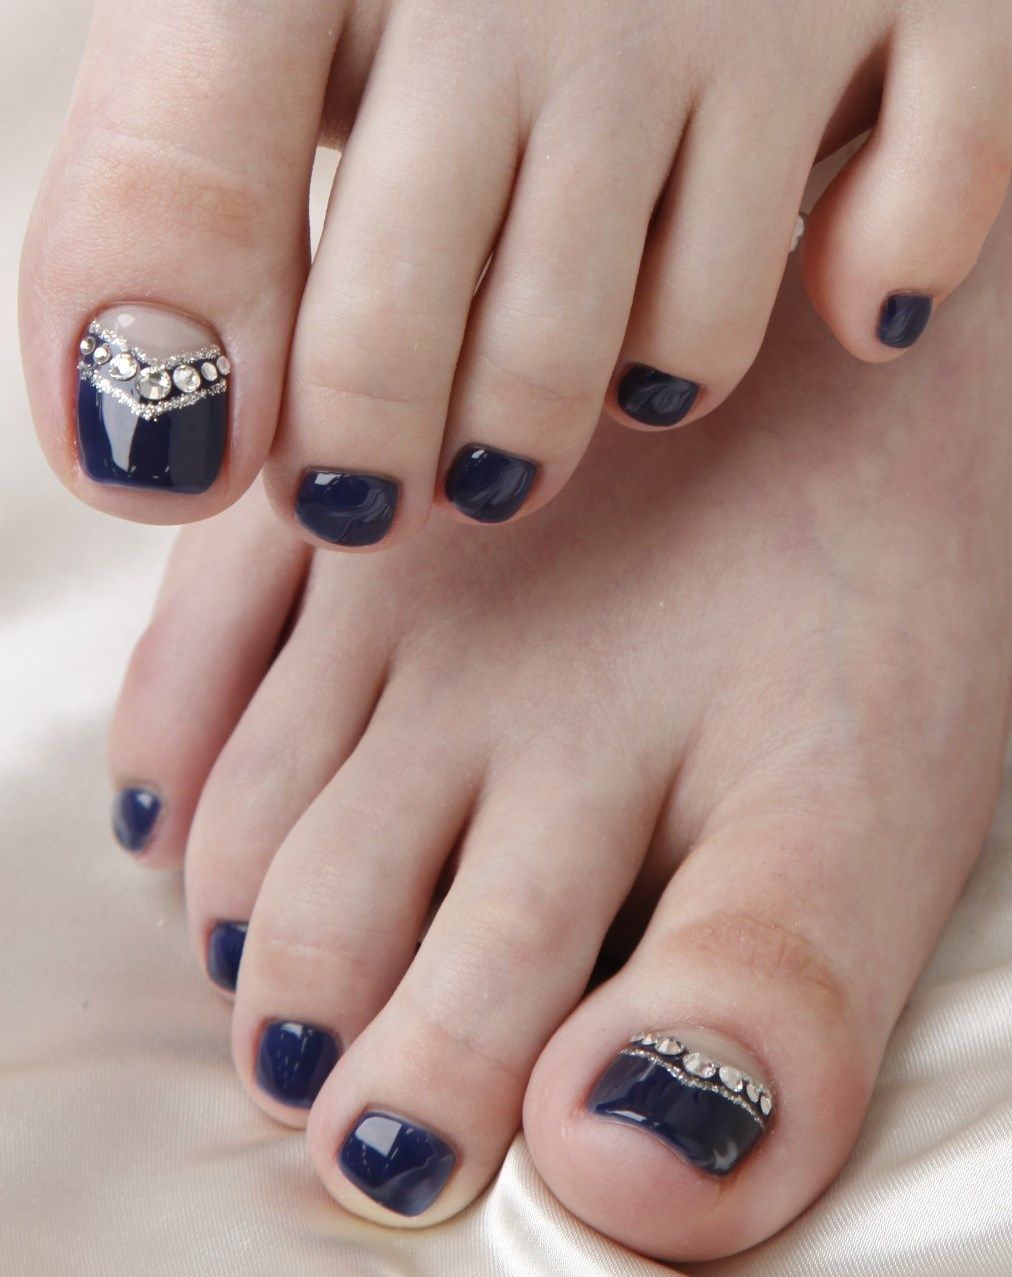 12 Nail Art Ideas For Your Toes My Style Pinterest Pedicure